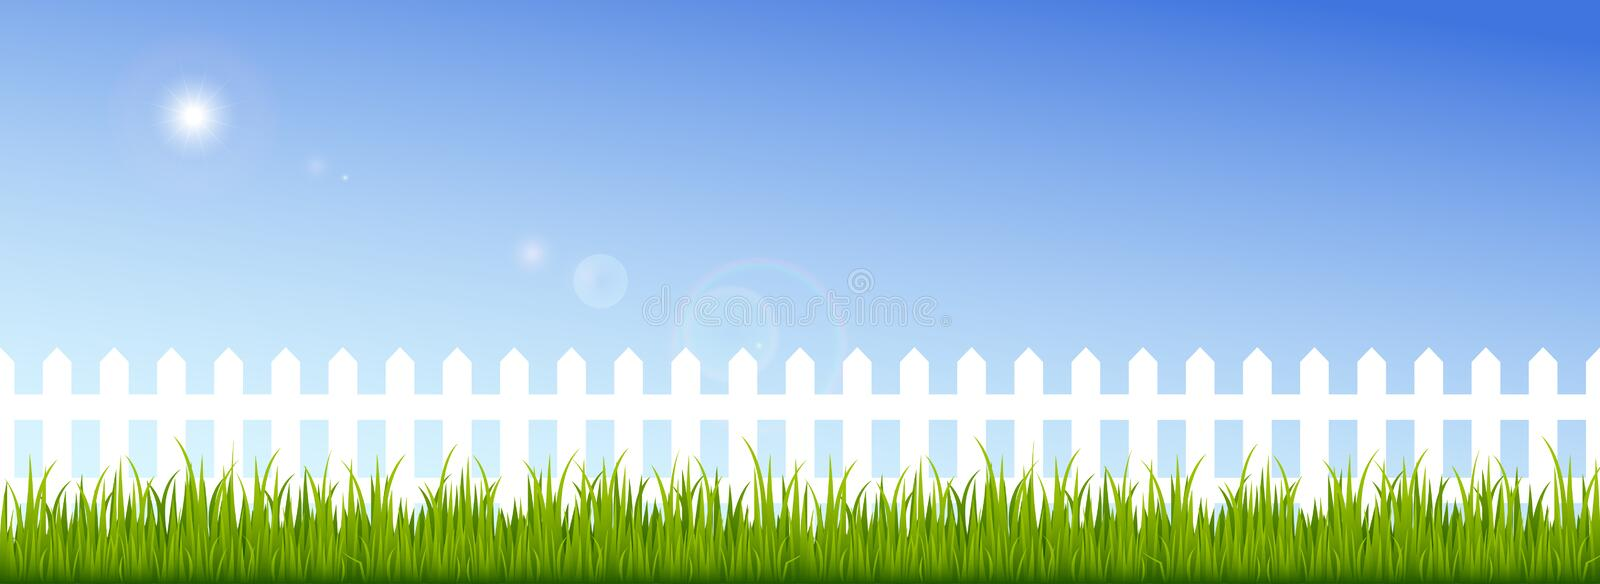 Green grass and white fence on a clear blue sky vector illustration